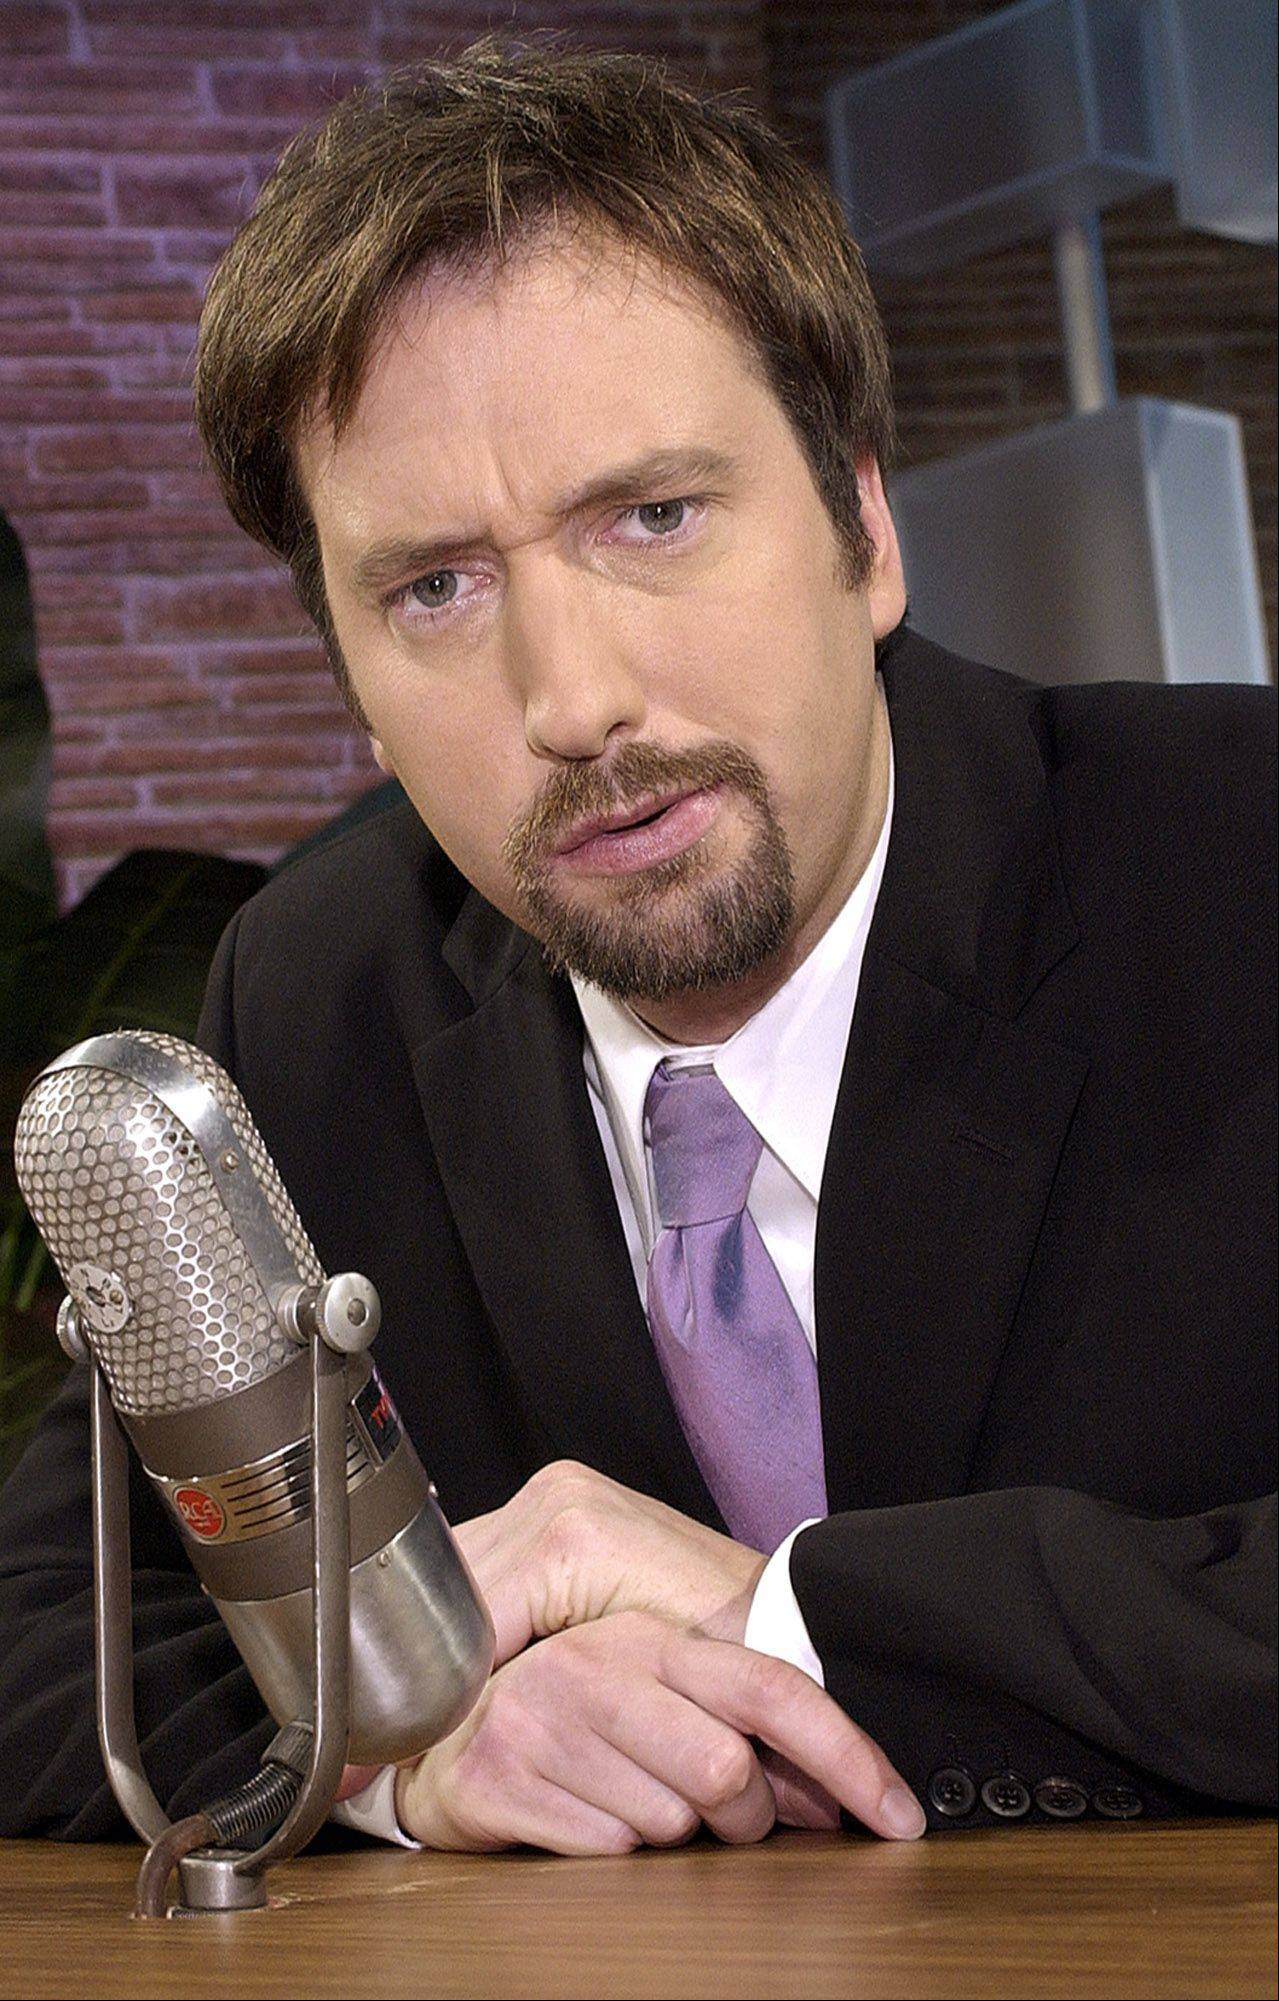 Comedian Tom Green is set to perform at Zanies locations in Chicago and St. Charles.